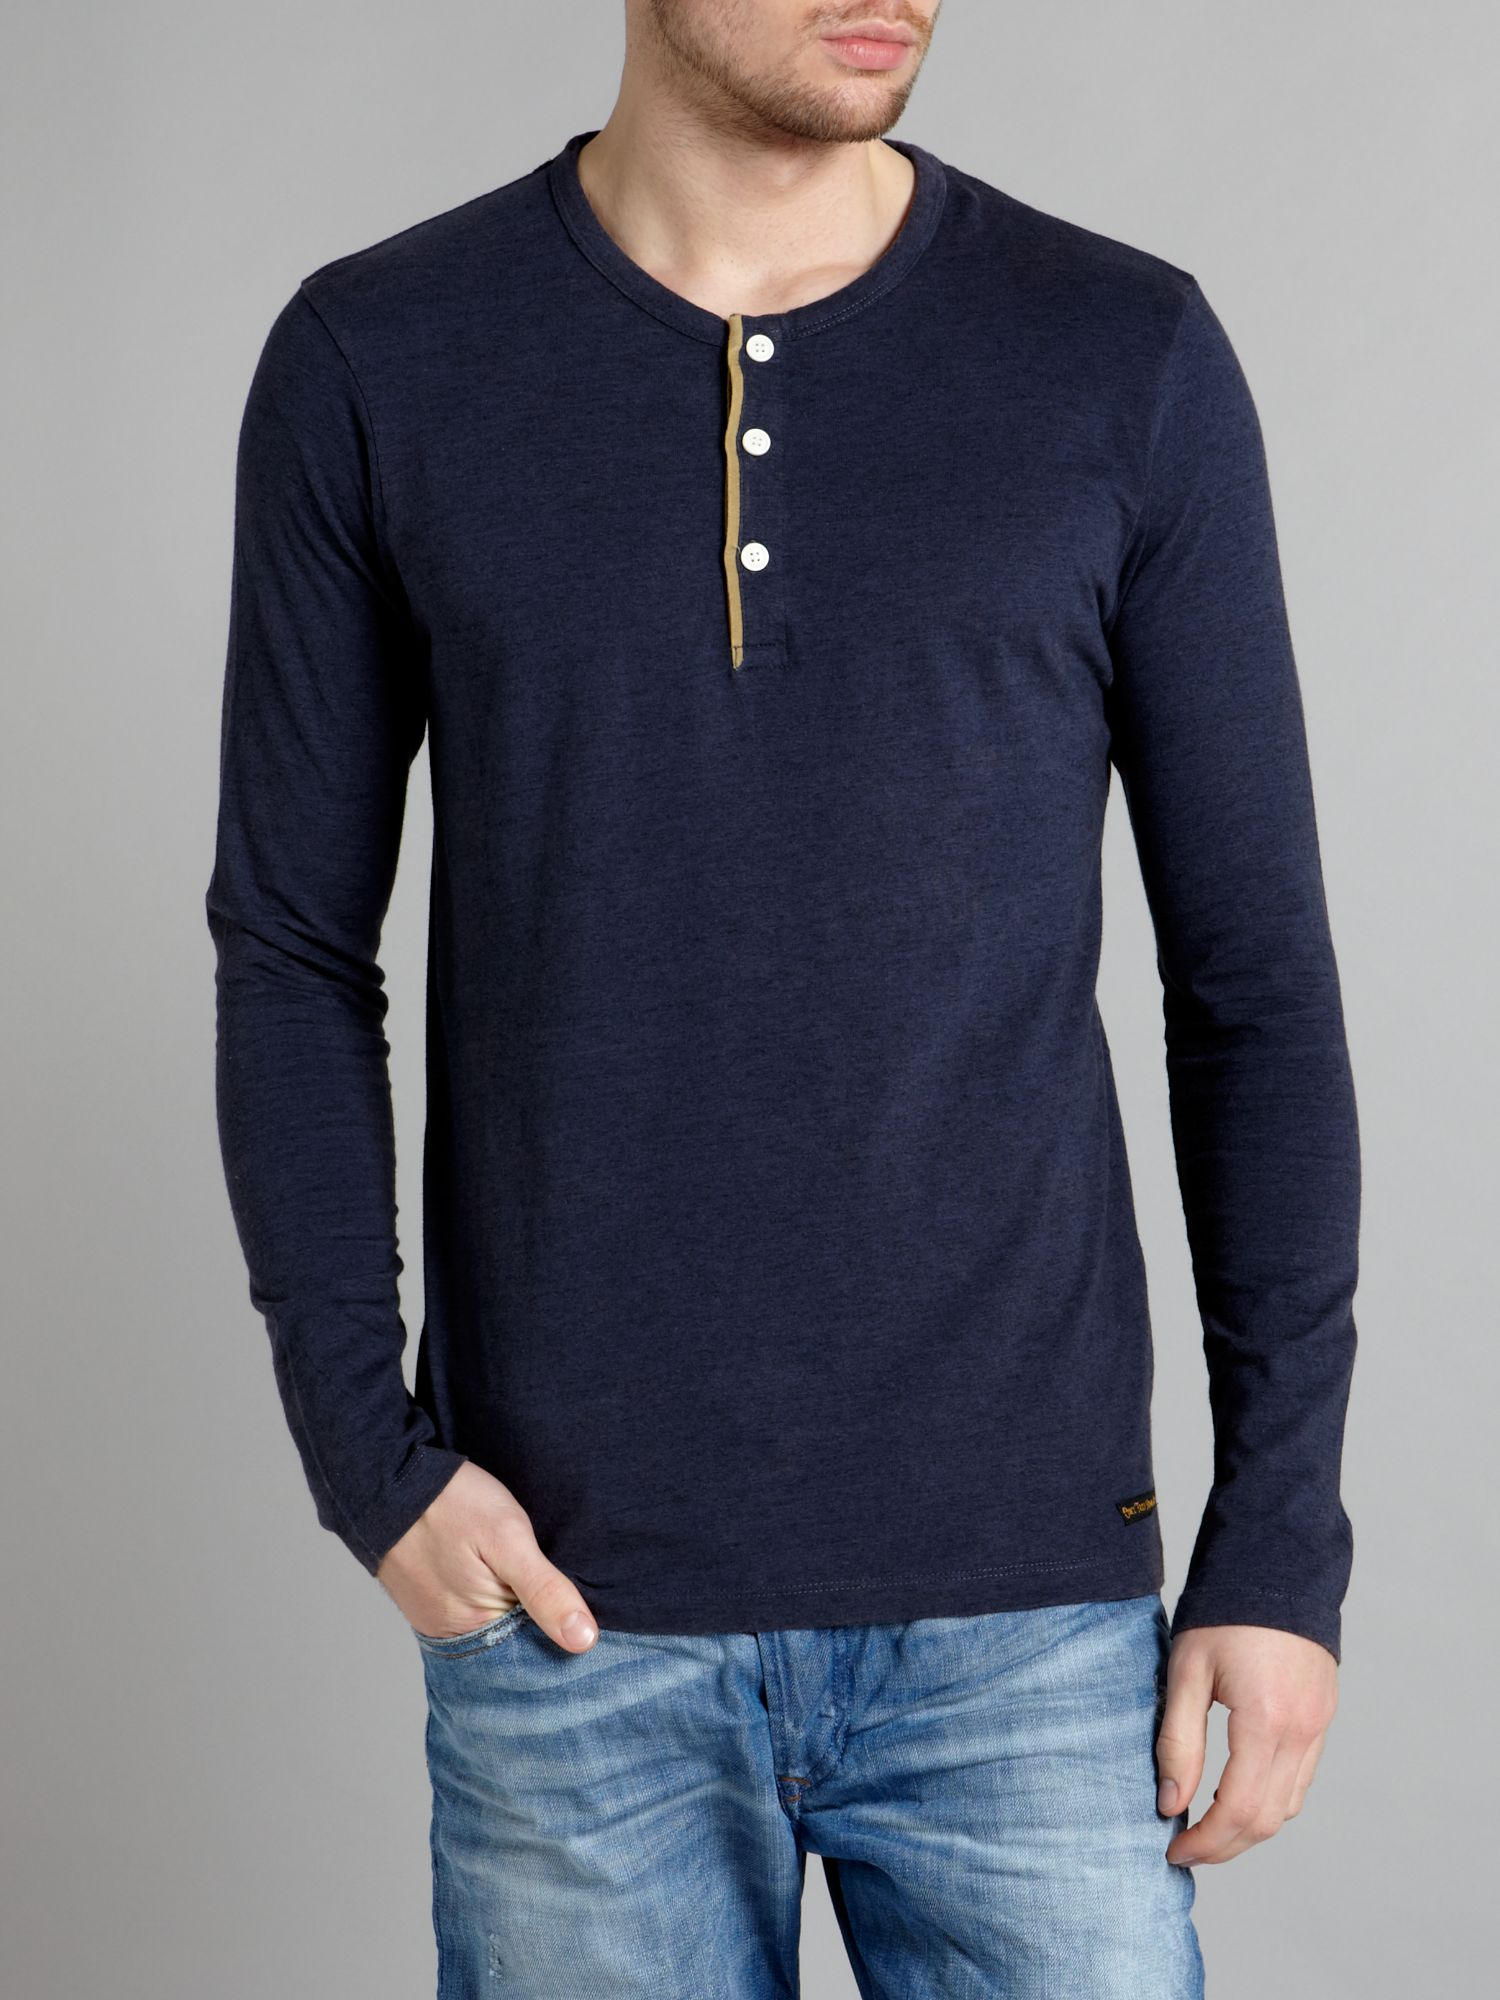 Long-sleeved rugged marl grandad T-shirt